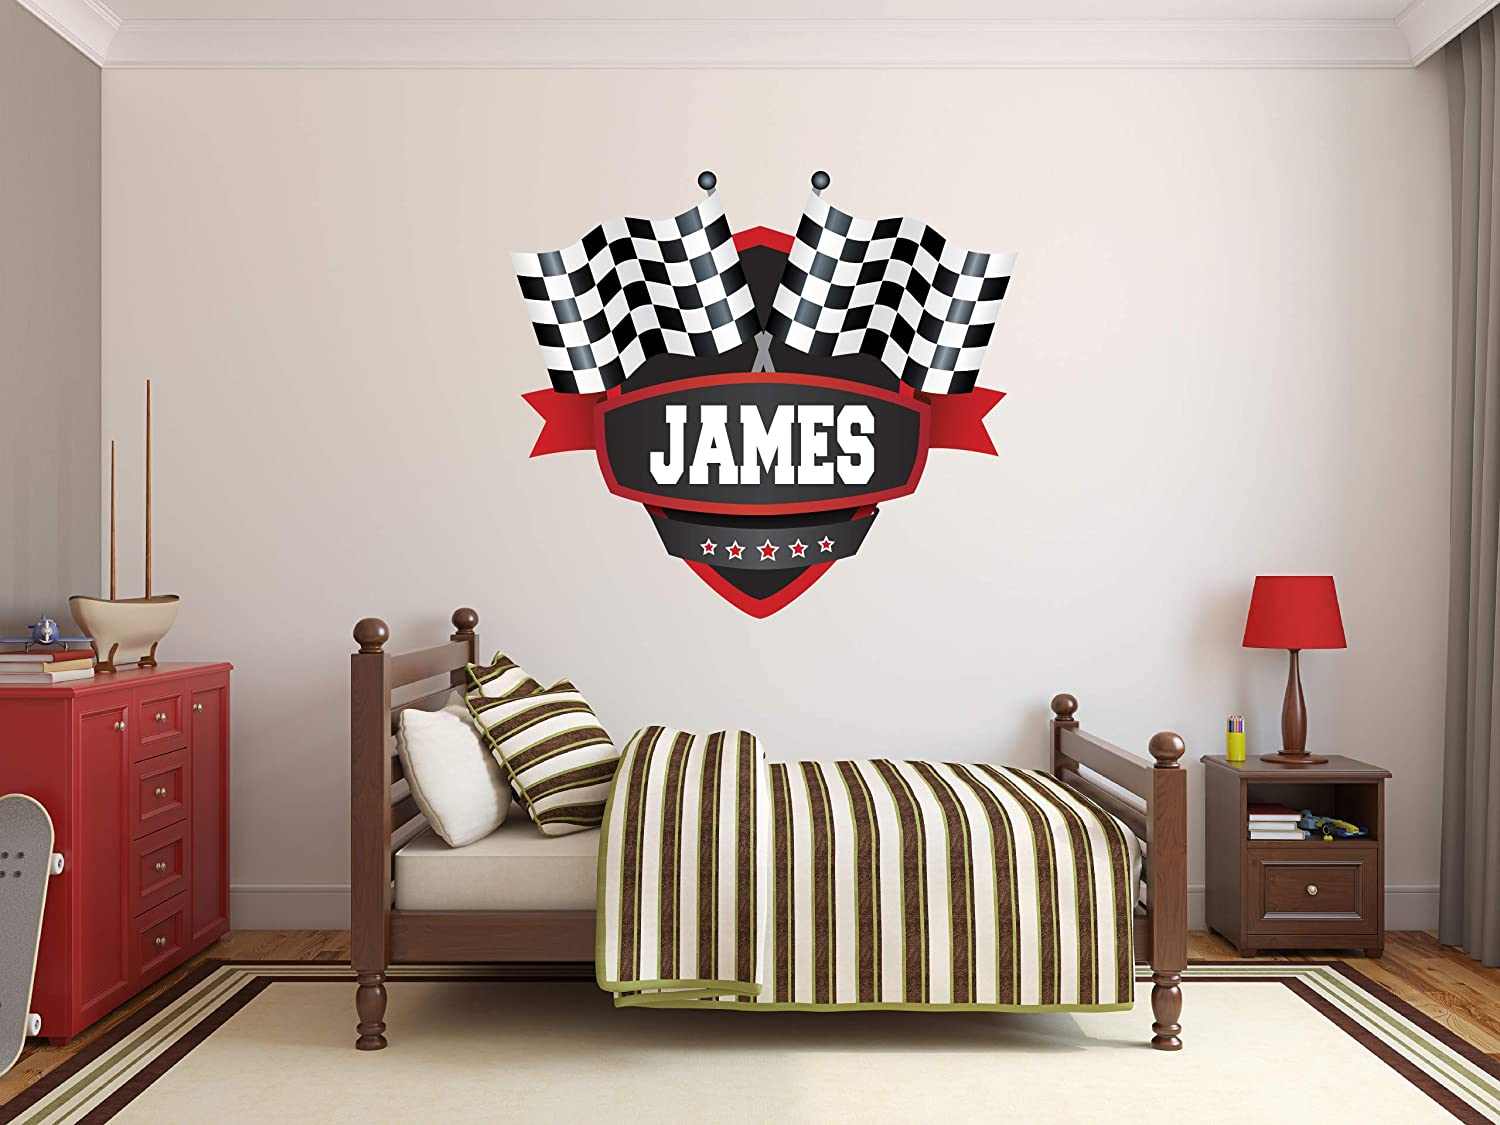 "Custom Name Racing Flags Wall Decal - Baby Room Decor - Nursery Wall Decals - Flags Wall Decor Mural Sticker (26"" x 22"")"